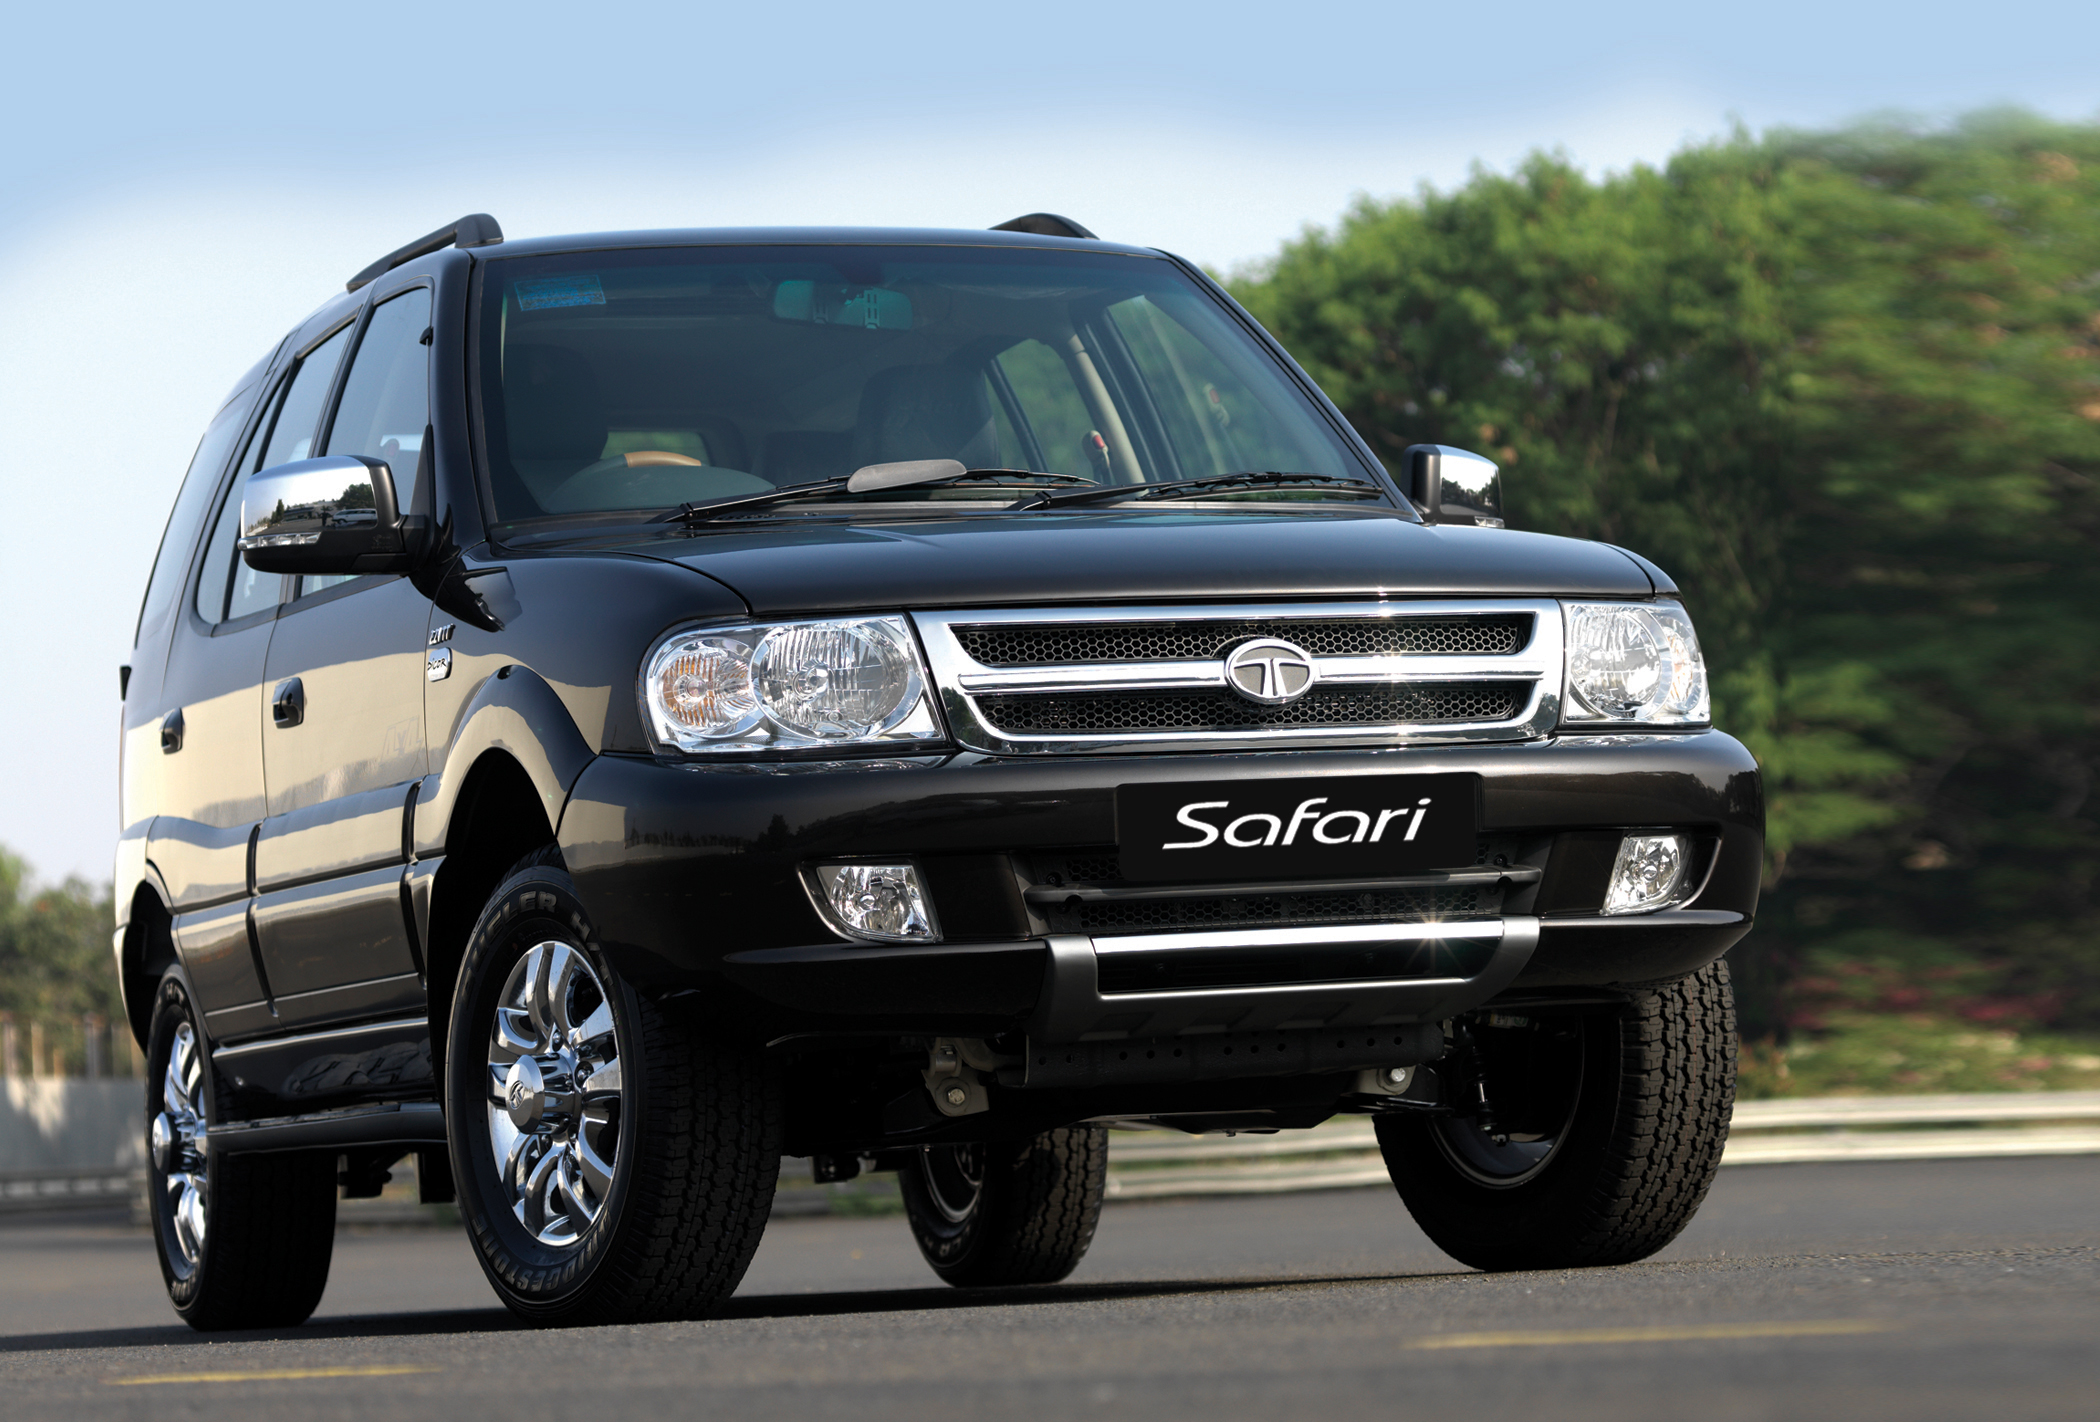 TATA NEW SAFARI DICOR